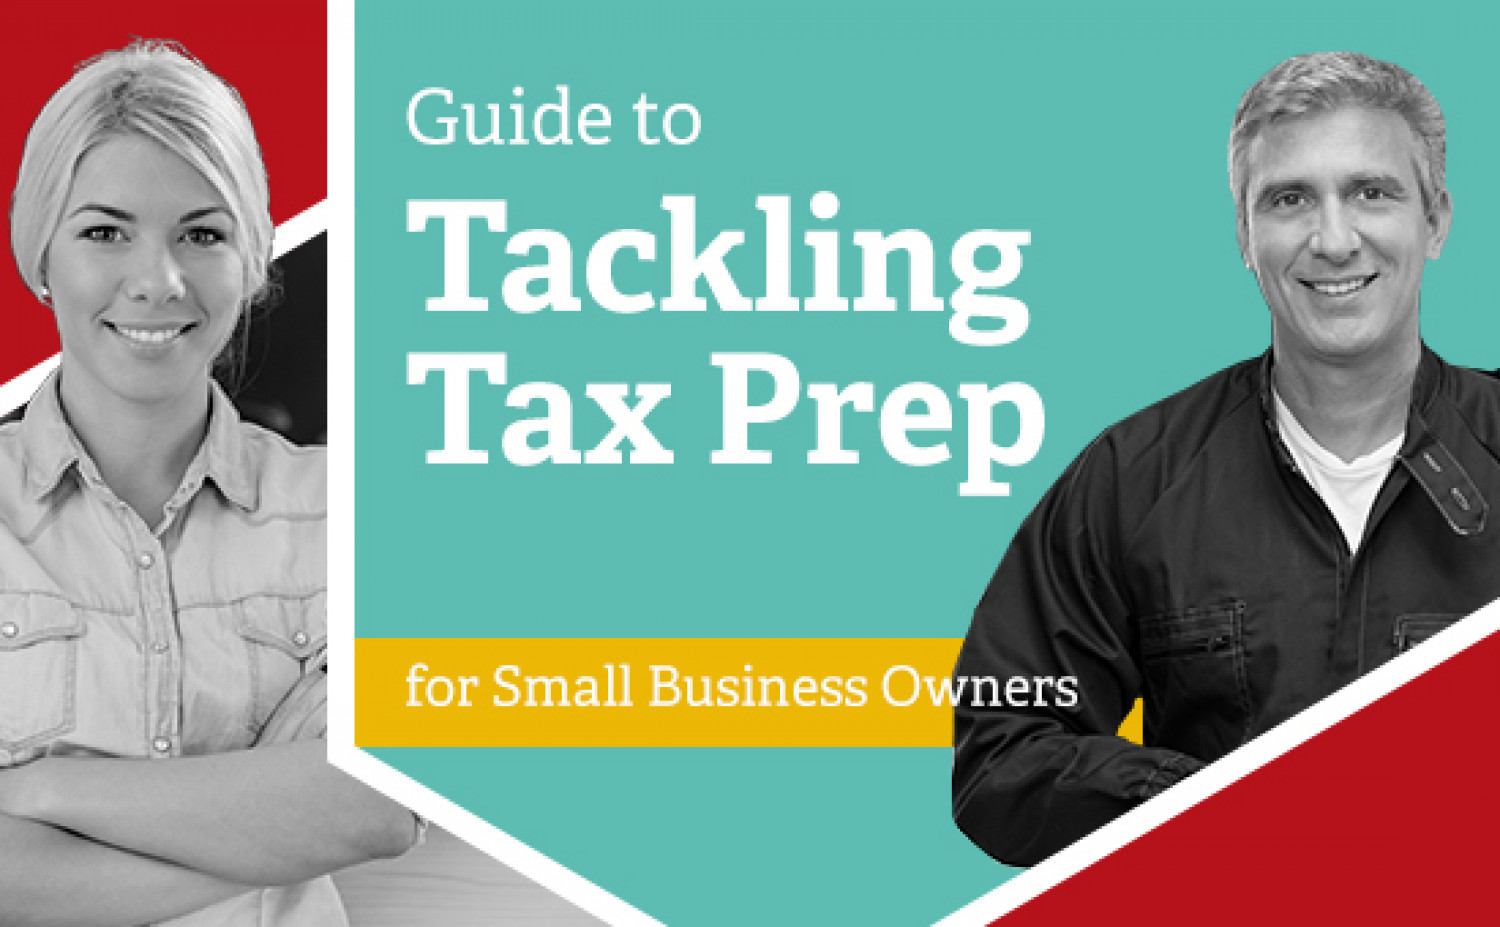 Guide to Tax Prep for Small Business Owners Infographic